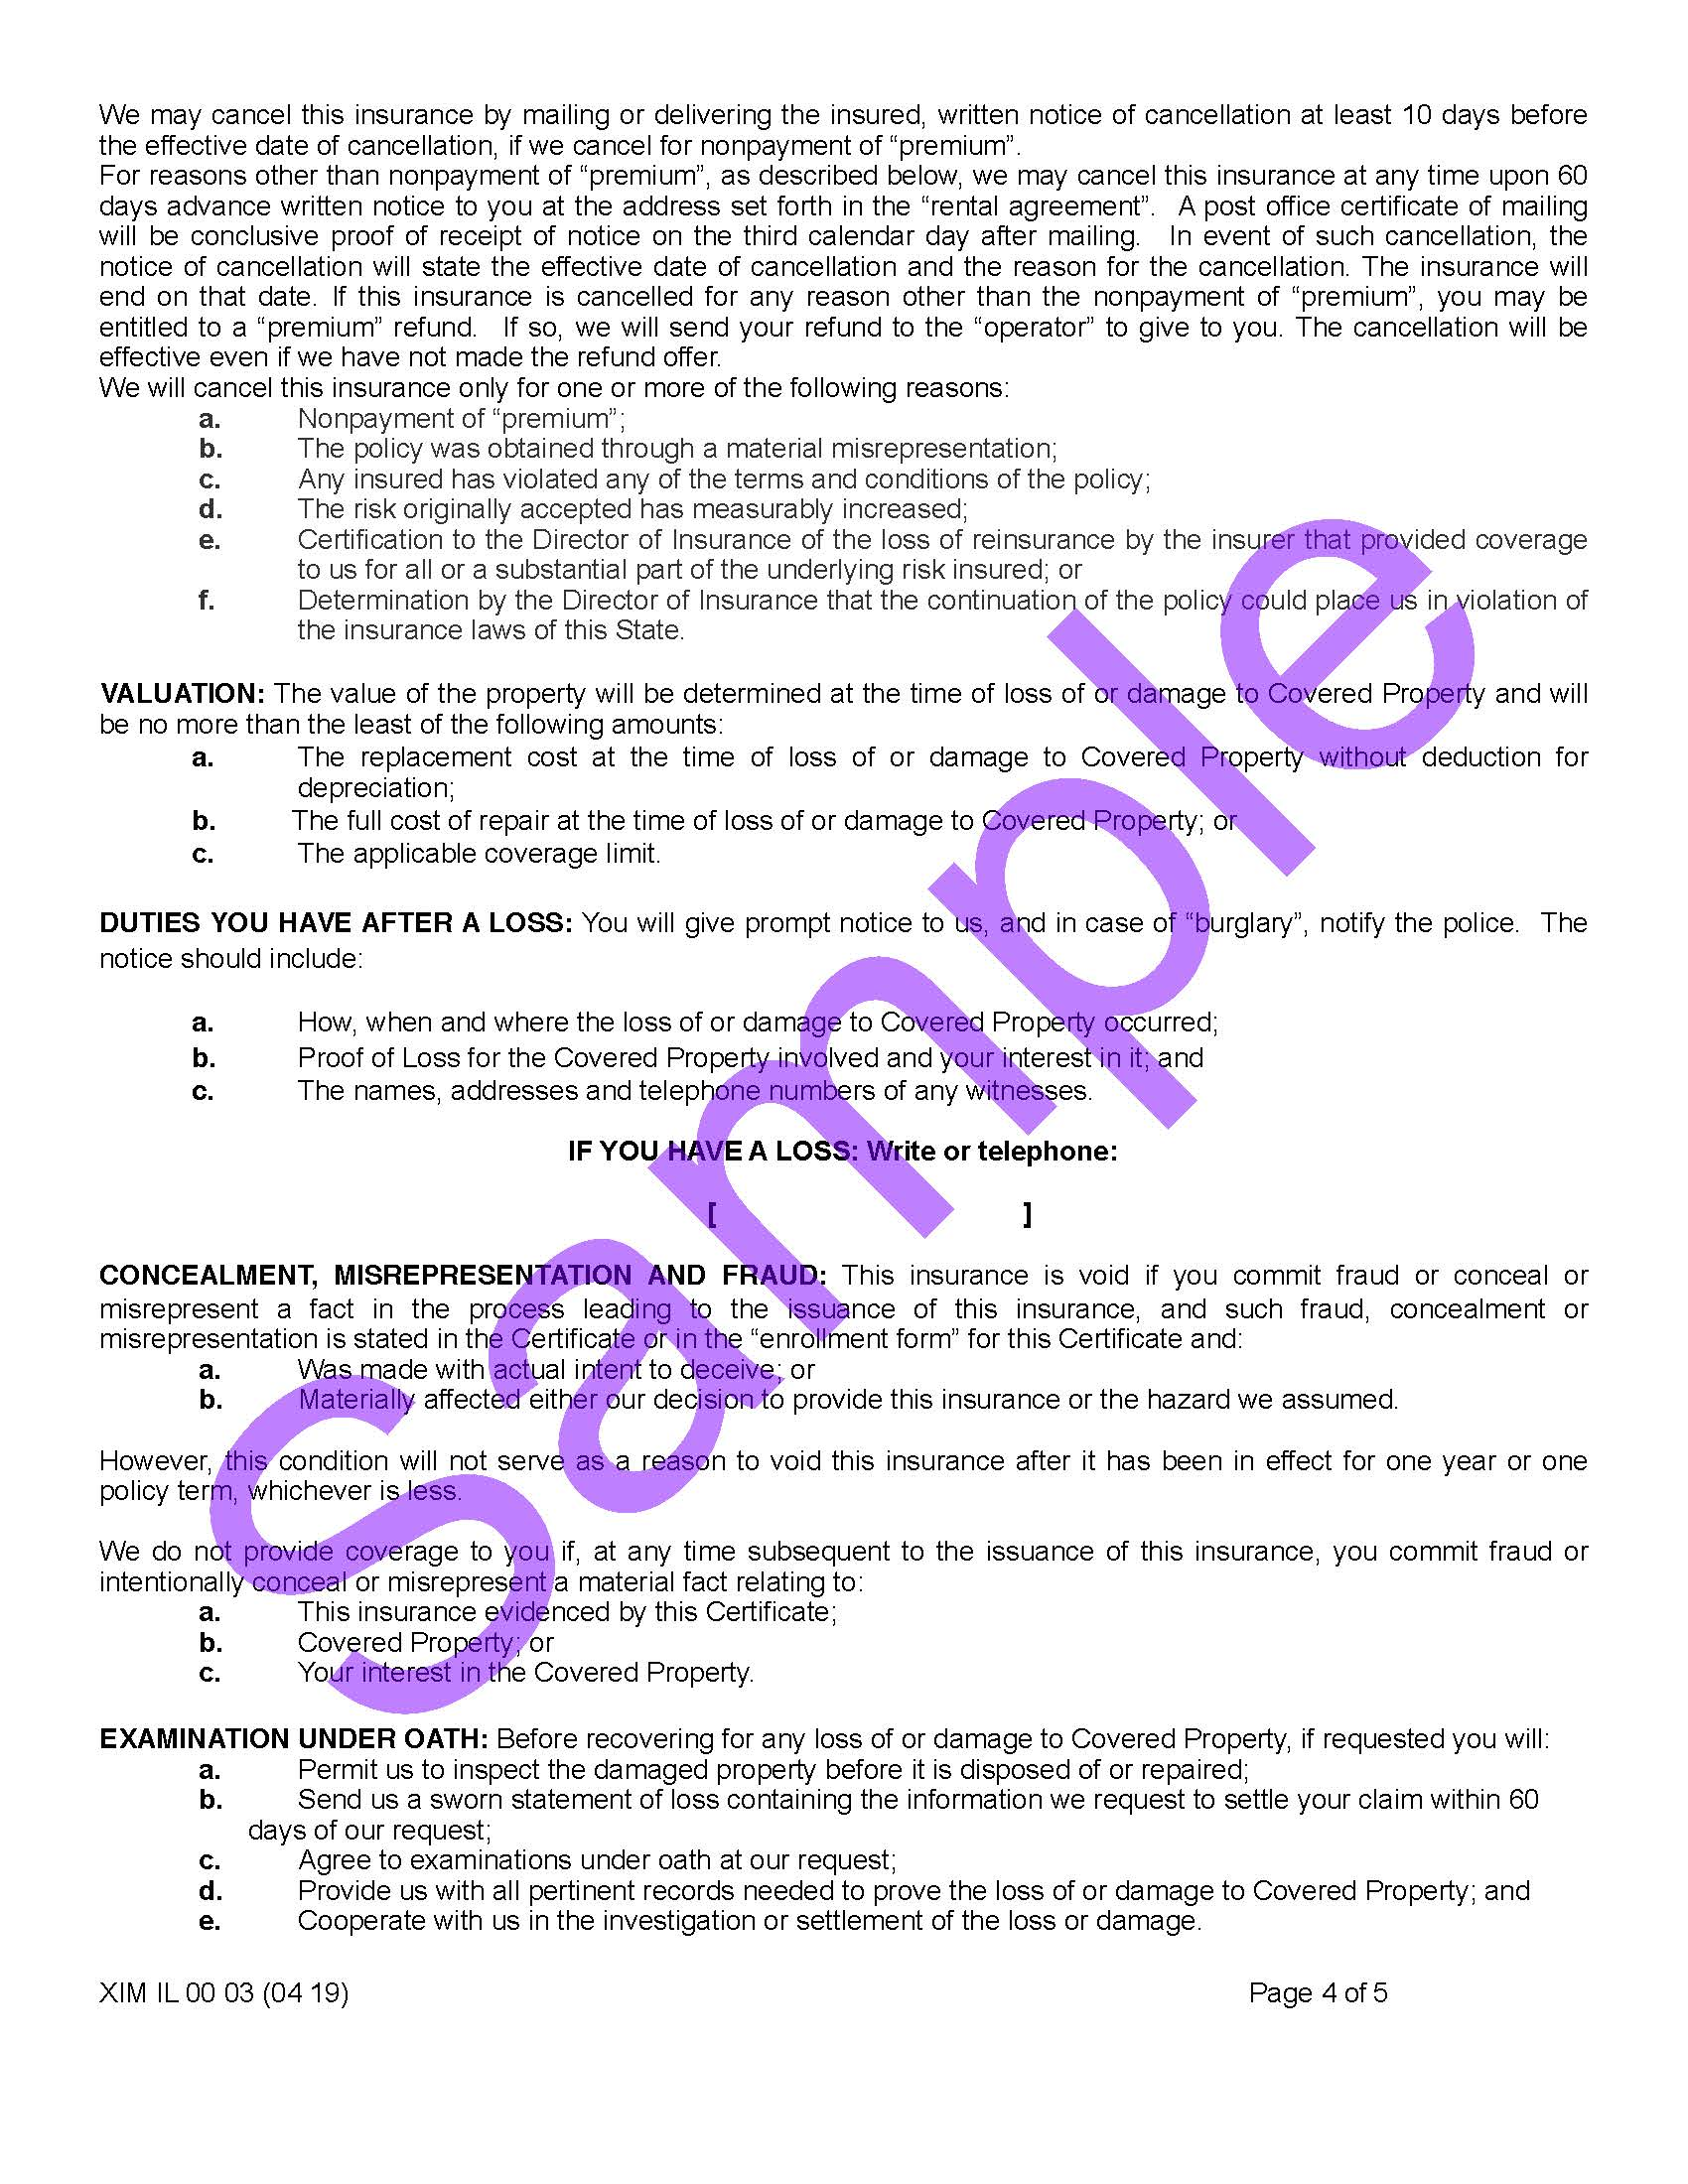 XIM IL 00 03 04 19 Illinois Certificate of InsuranceSample_Page_4.jpg